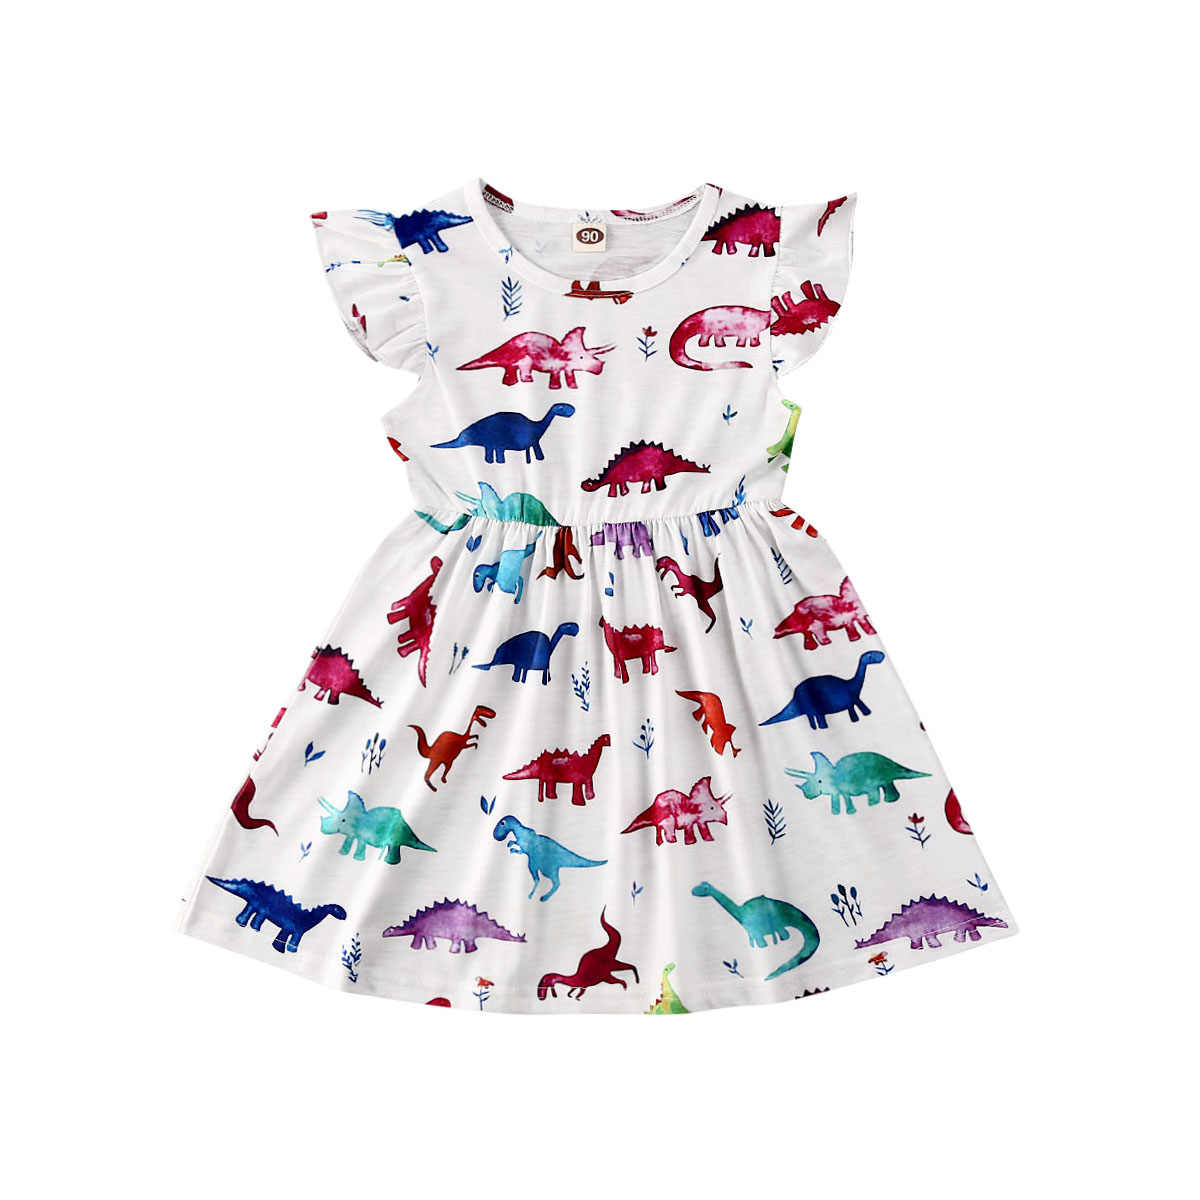 1-6Y Toddler Kids Baby Girl Dress Cartoon Animal Print Ruffles Sleeve Knee Length A-Line Dress Summer Outfits